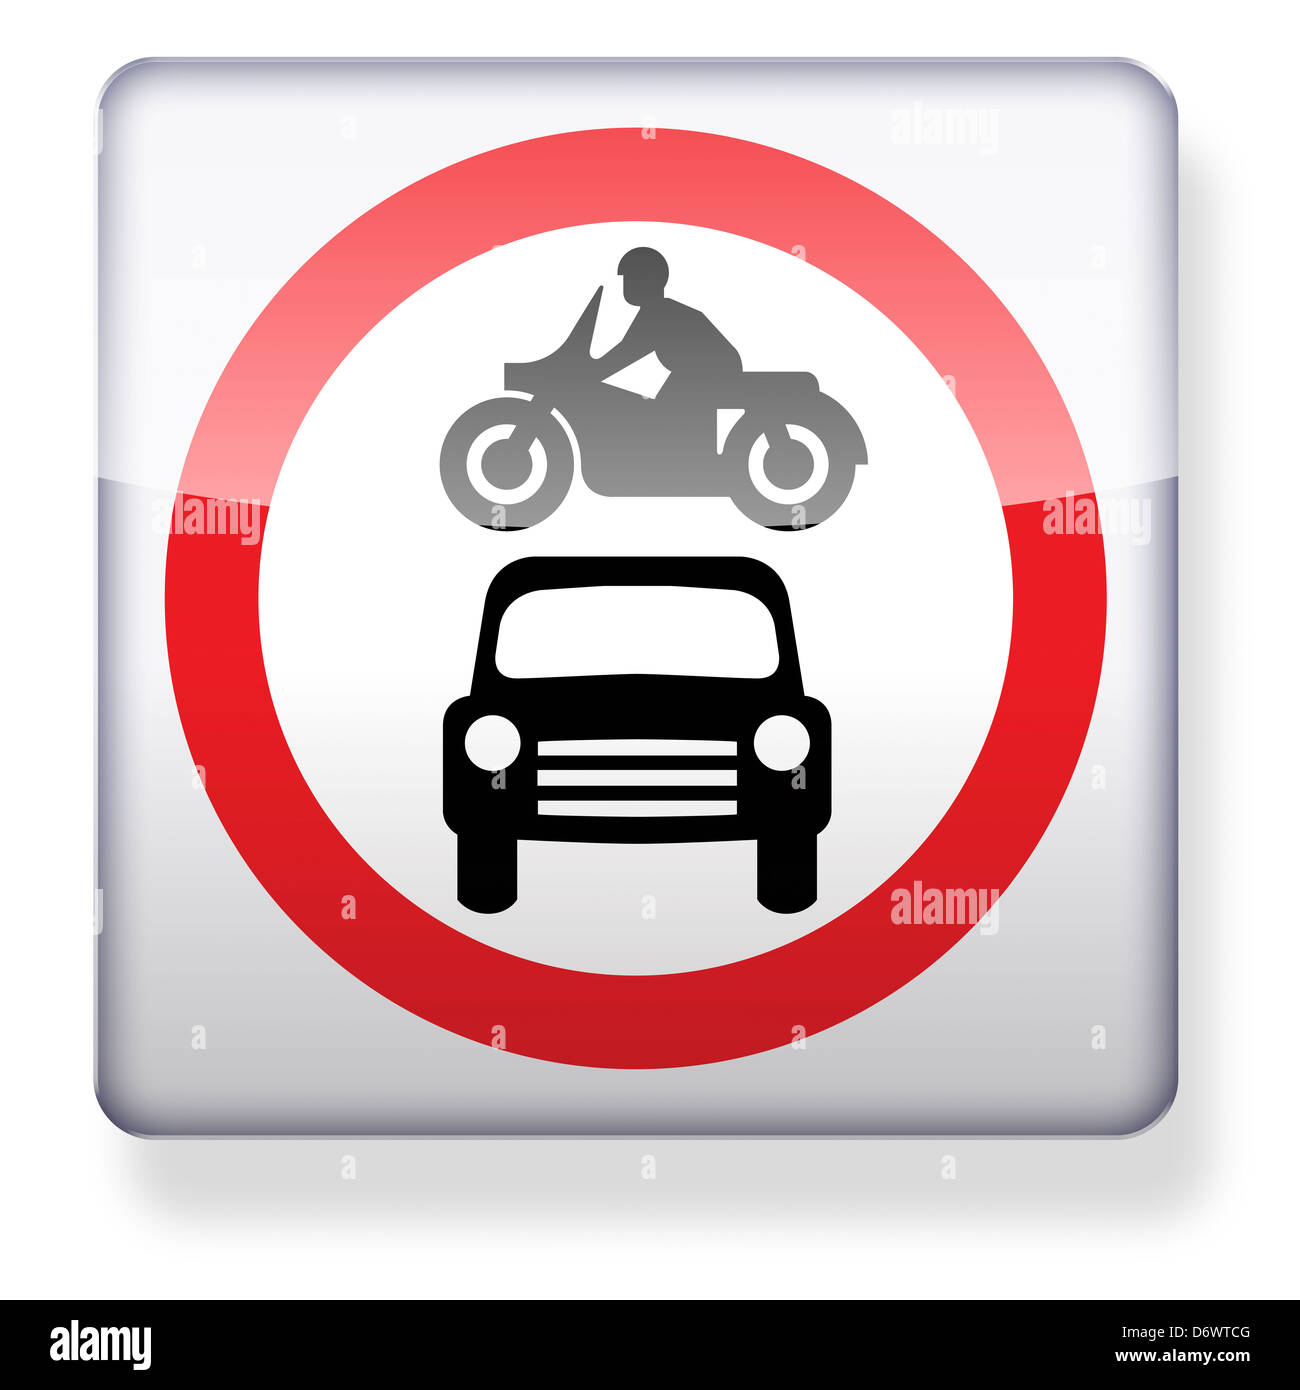 No motor vehicles road sign as an app icon. Clipping path included. - Stock Image